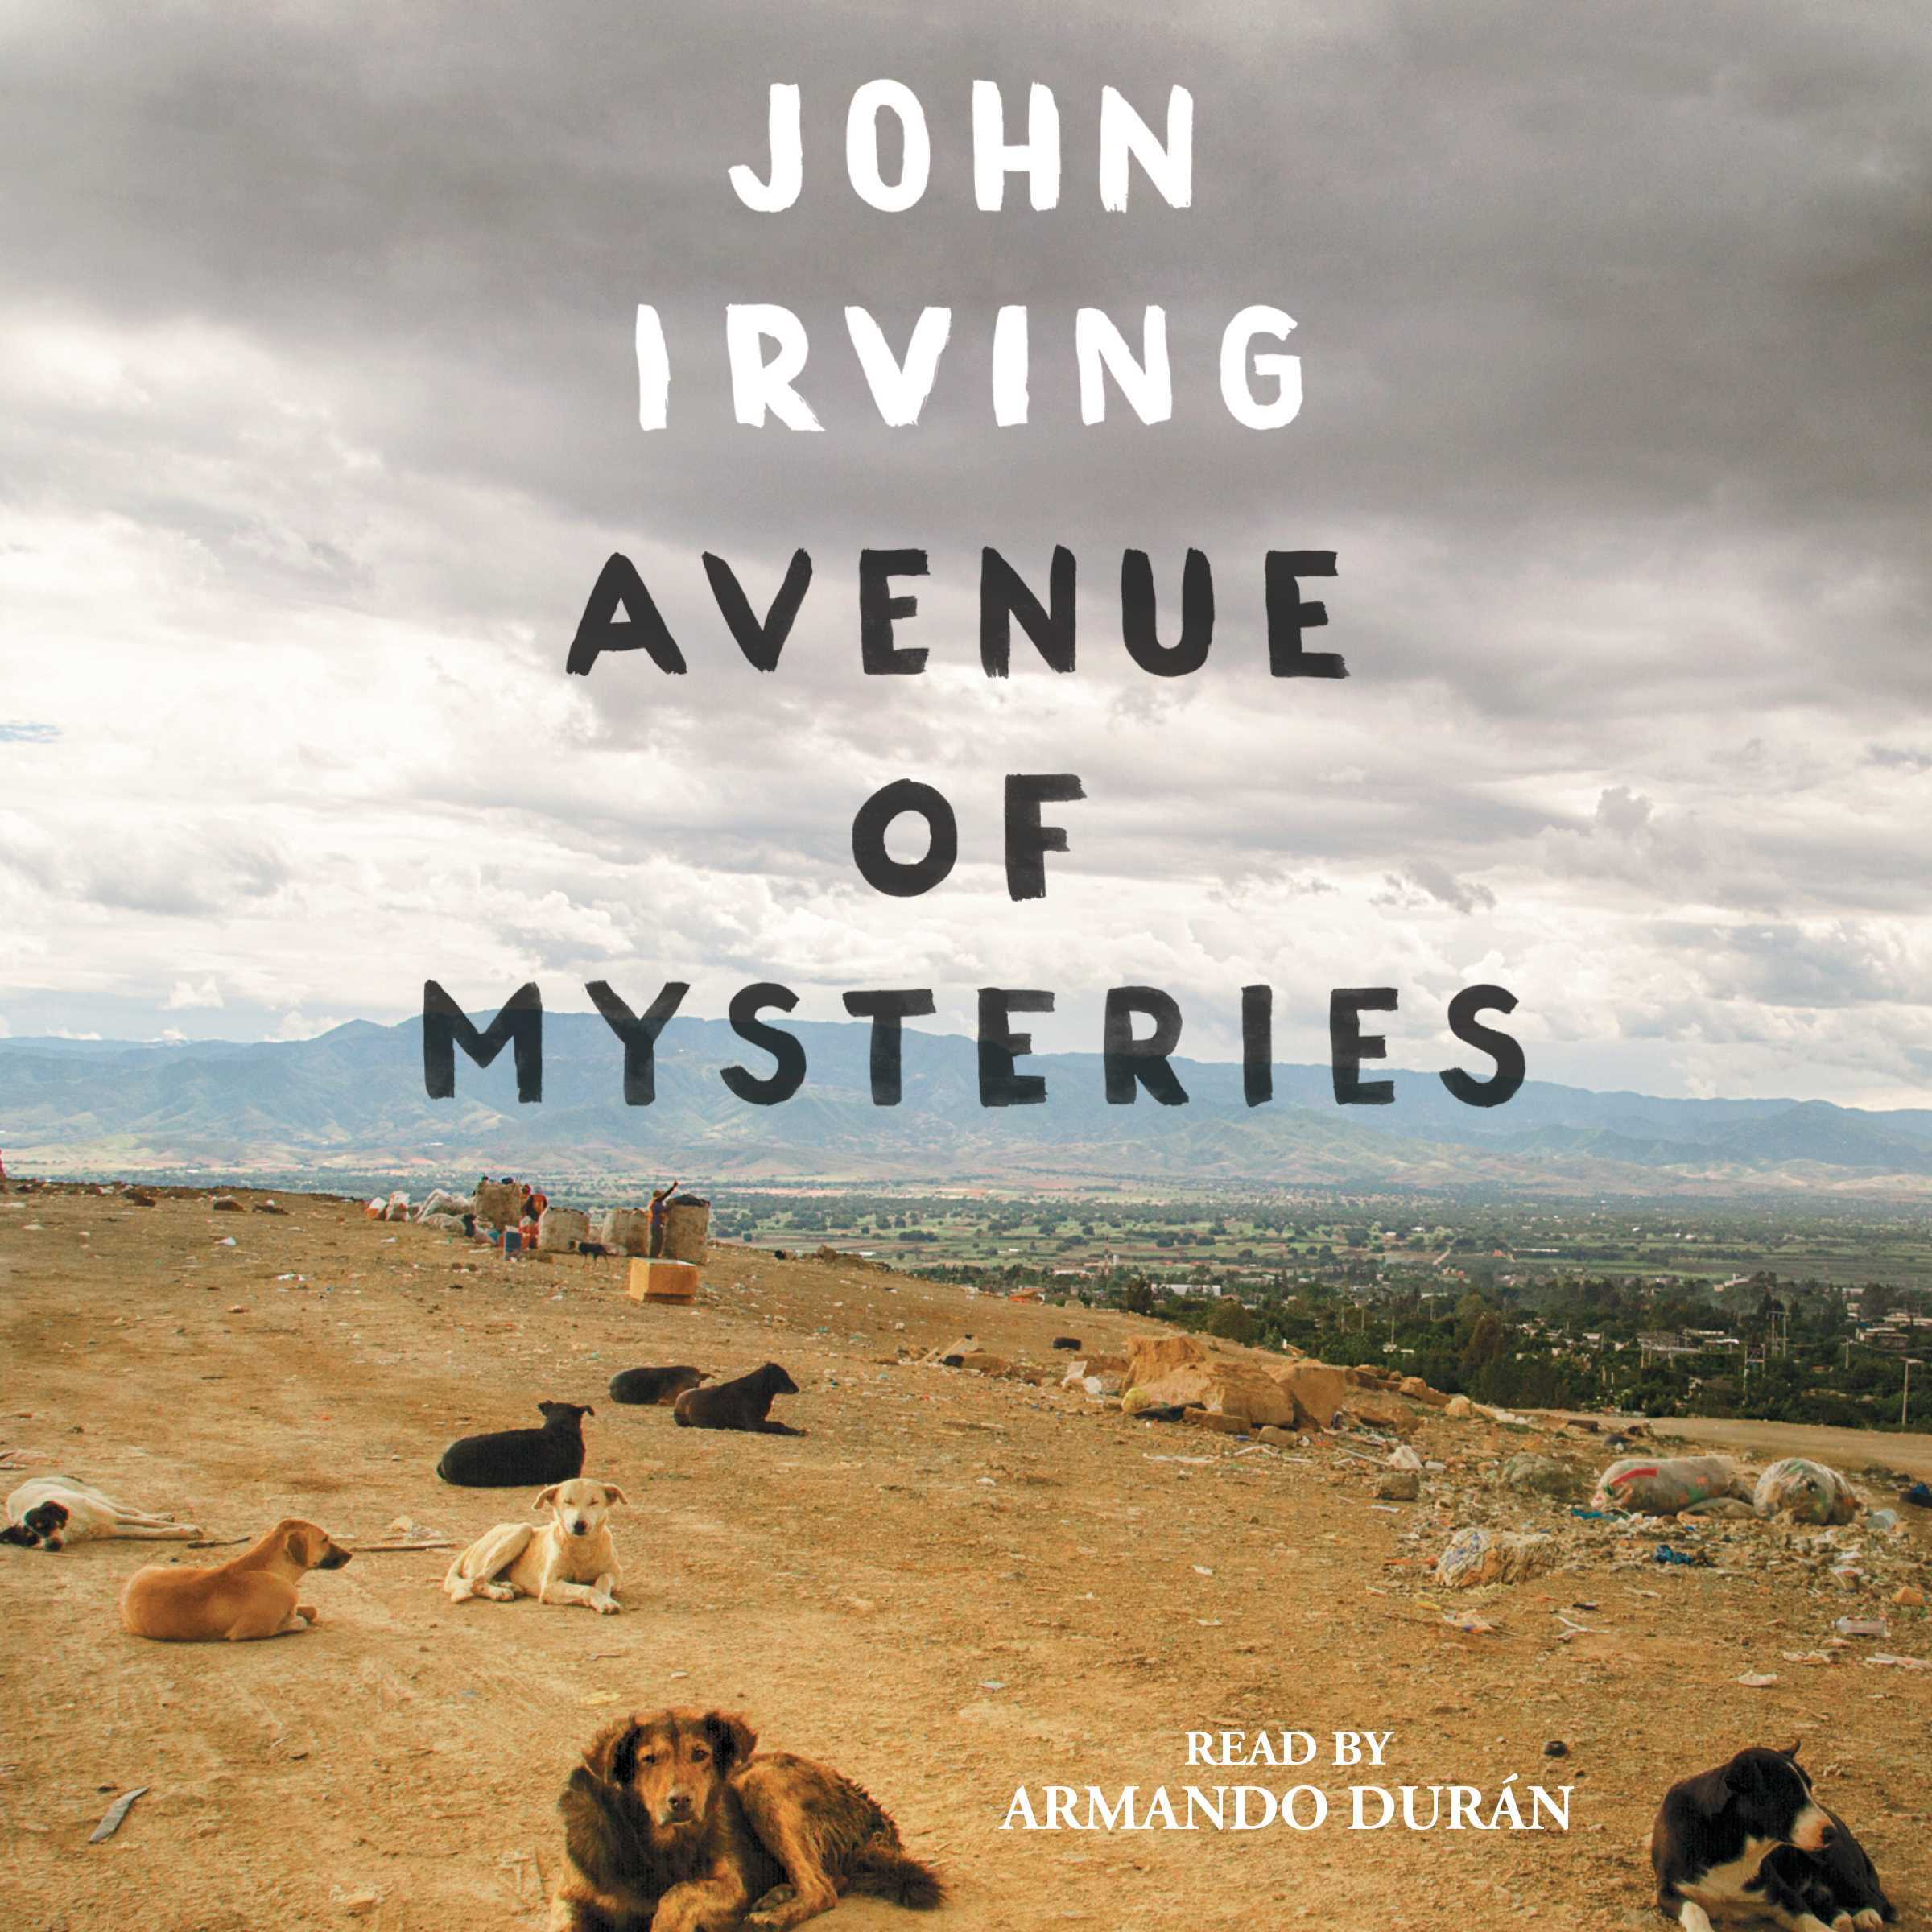 Avenue of mysteries 9781442384507 hr